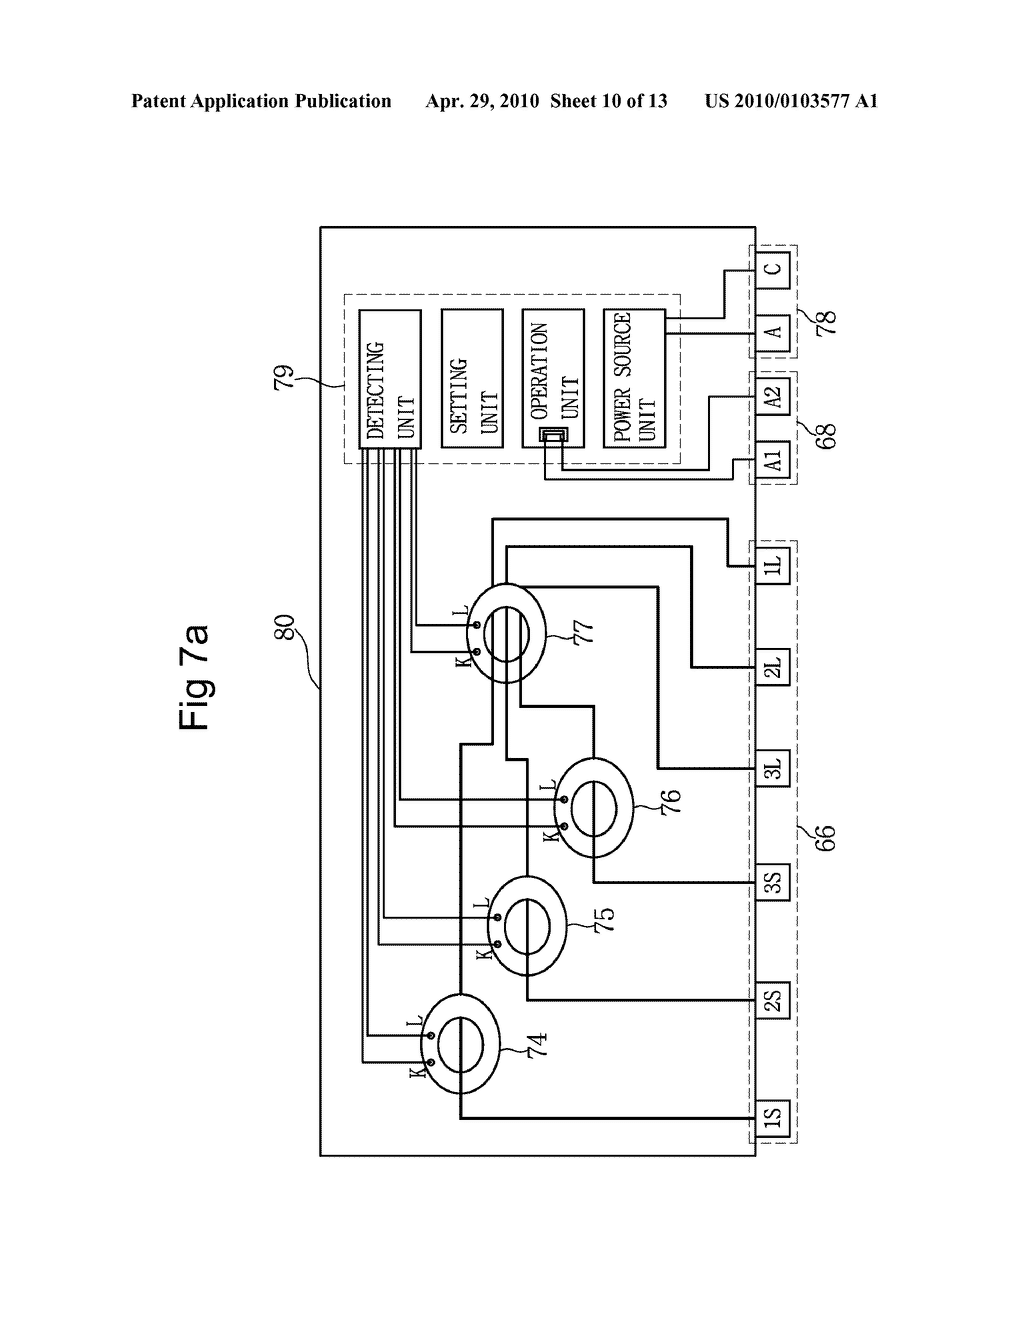 hight resolution of apparatus and method for preventing reverse power flow of over current relay diagram schematic and image 11